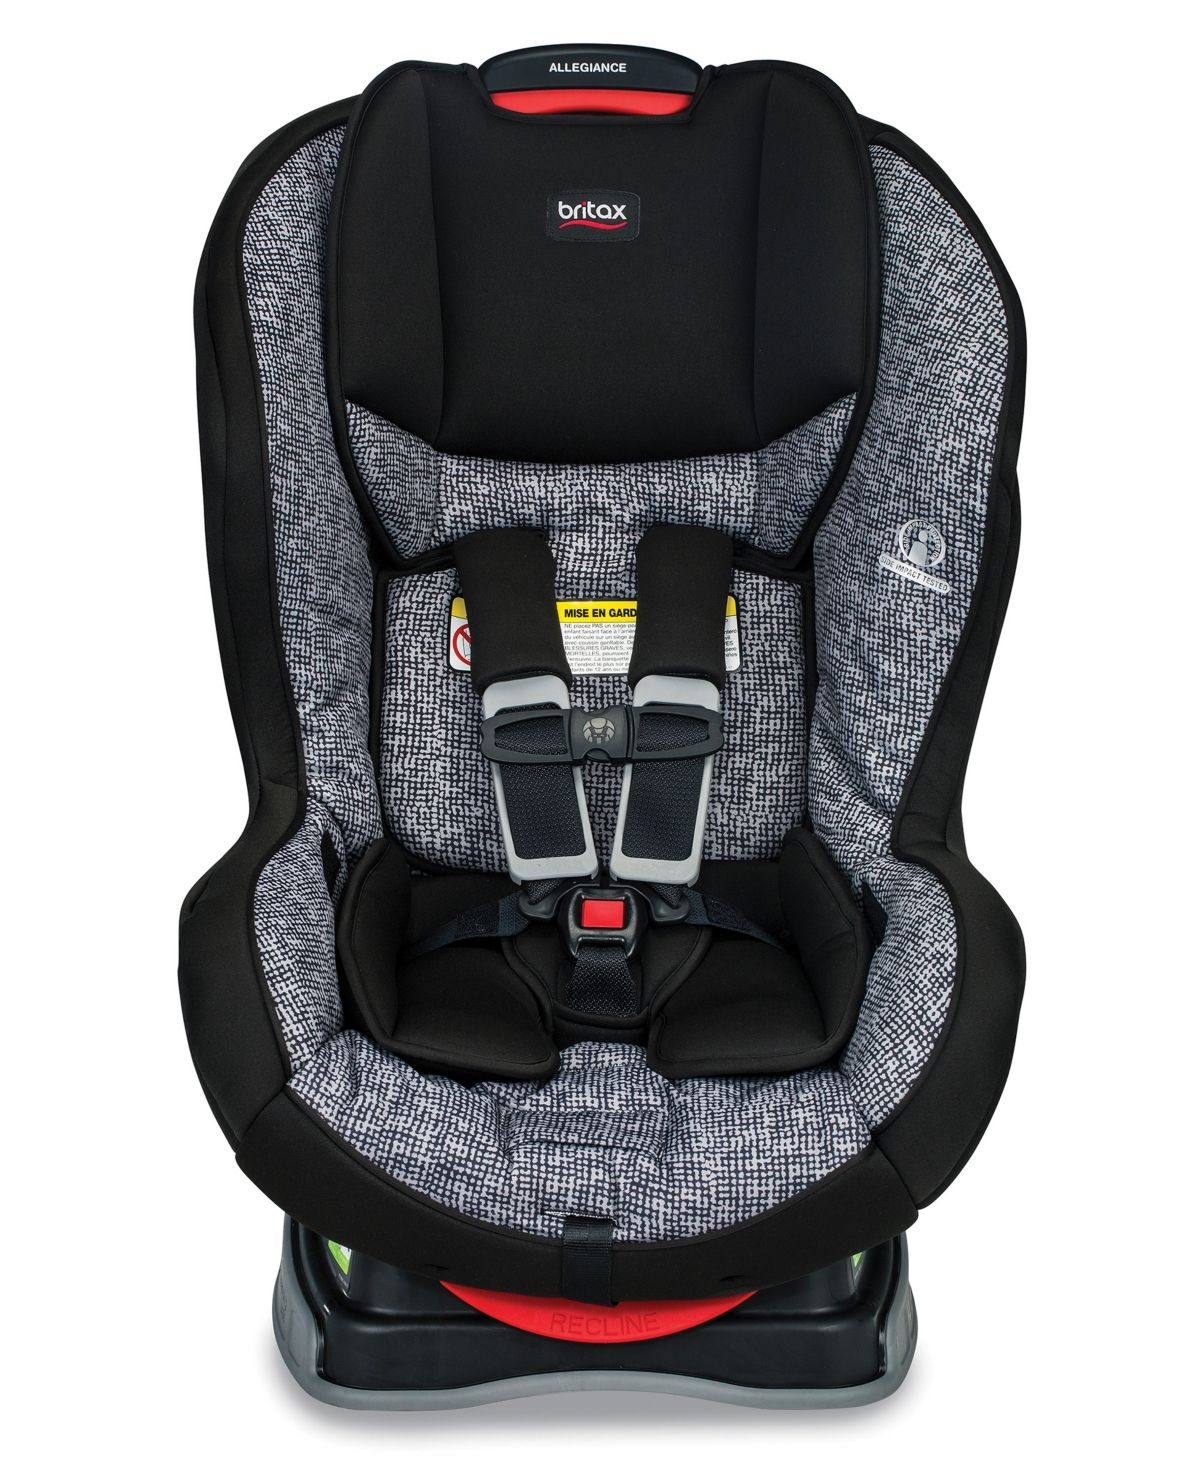 Britax Allegiance 3 Stage Convertible Car Seat & Reviews